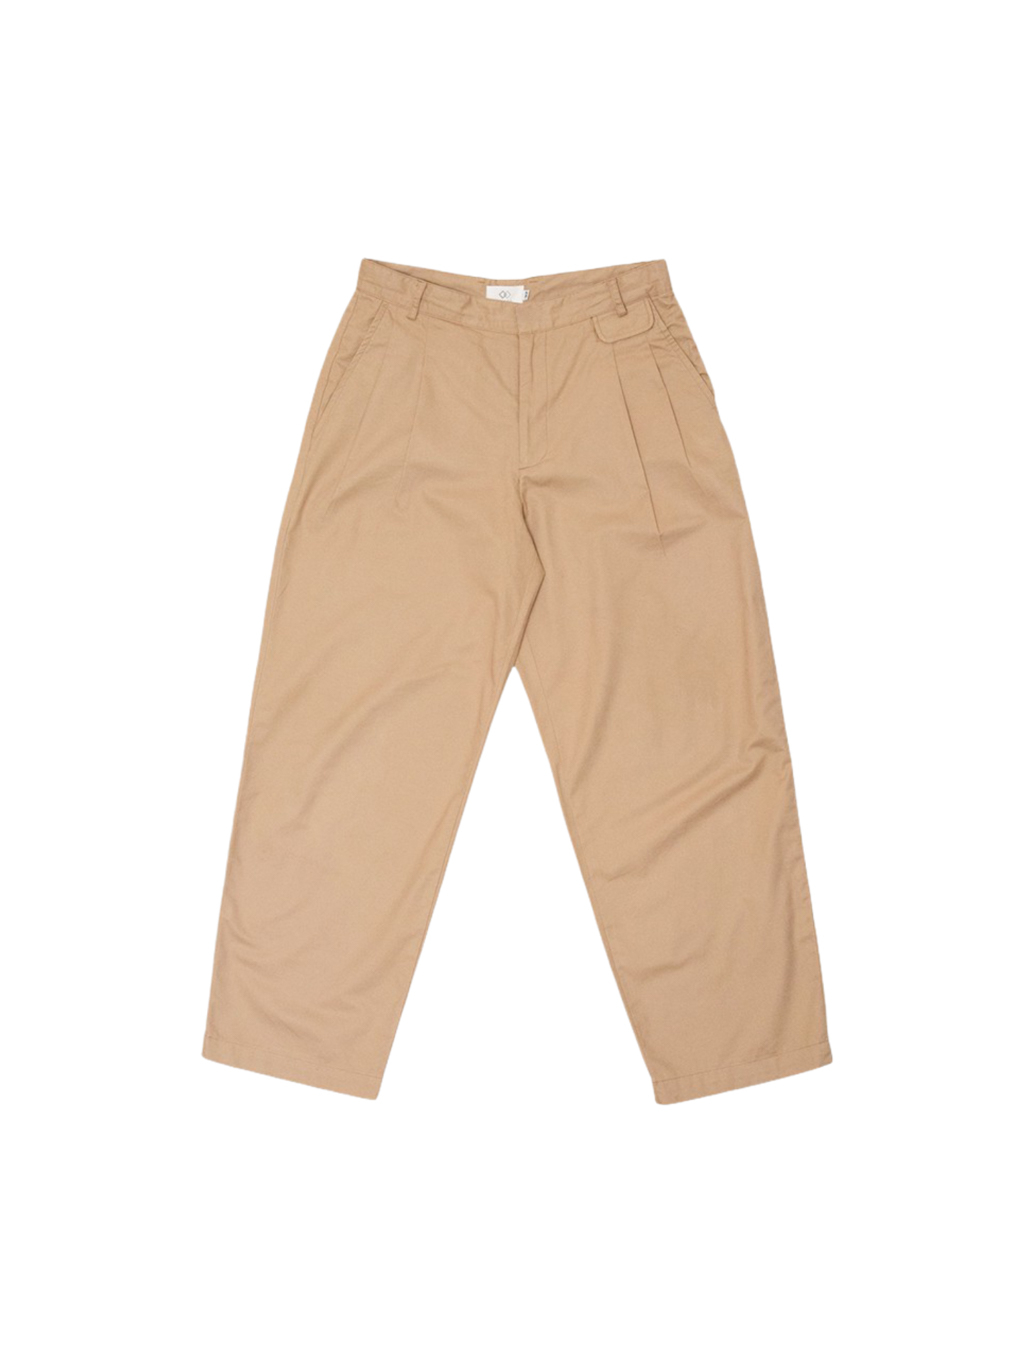 Mens ankle trousers (Brown)